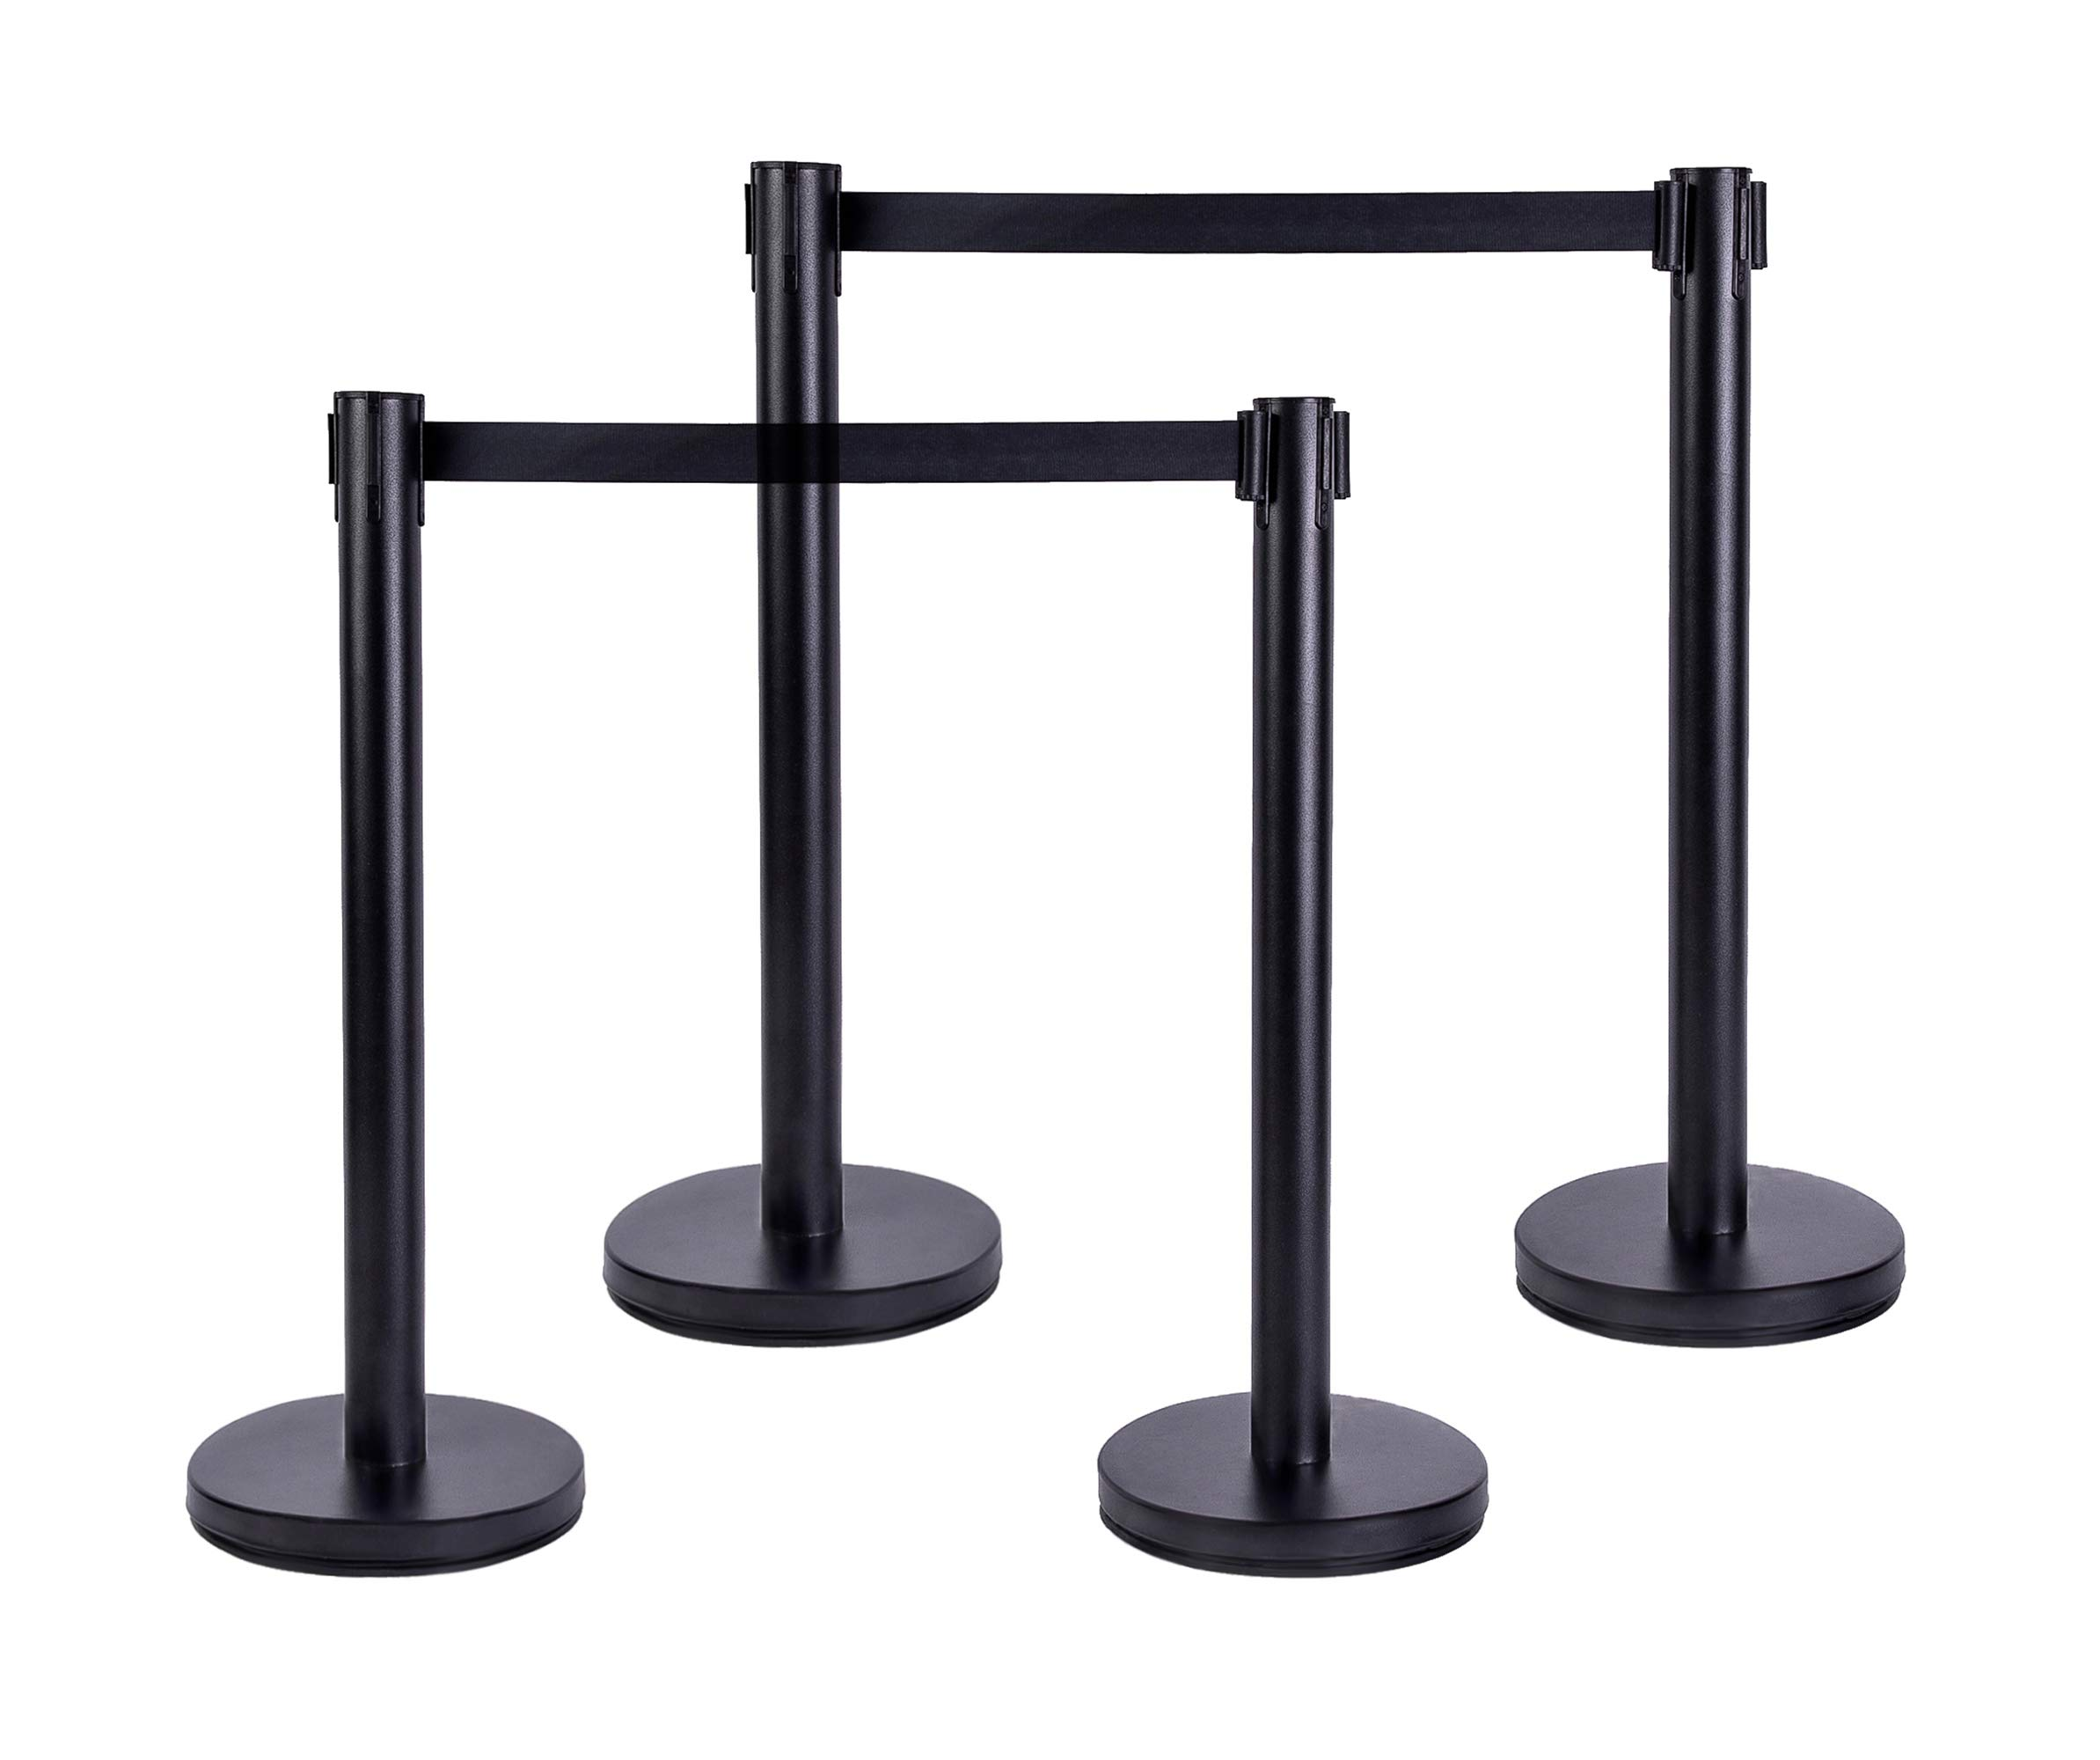 Best Companions 36 Inch Stanchions with 6.56 Foot Retractable Belt, Crowd Control Barrier-Set of 4, Black